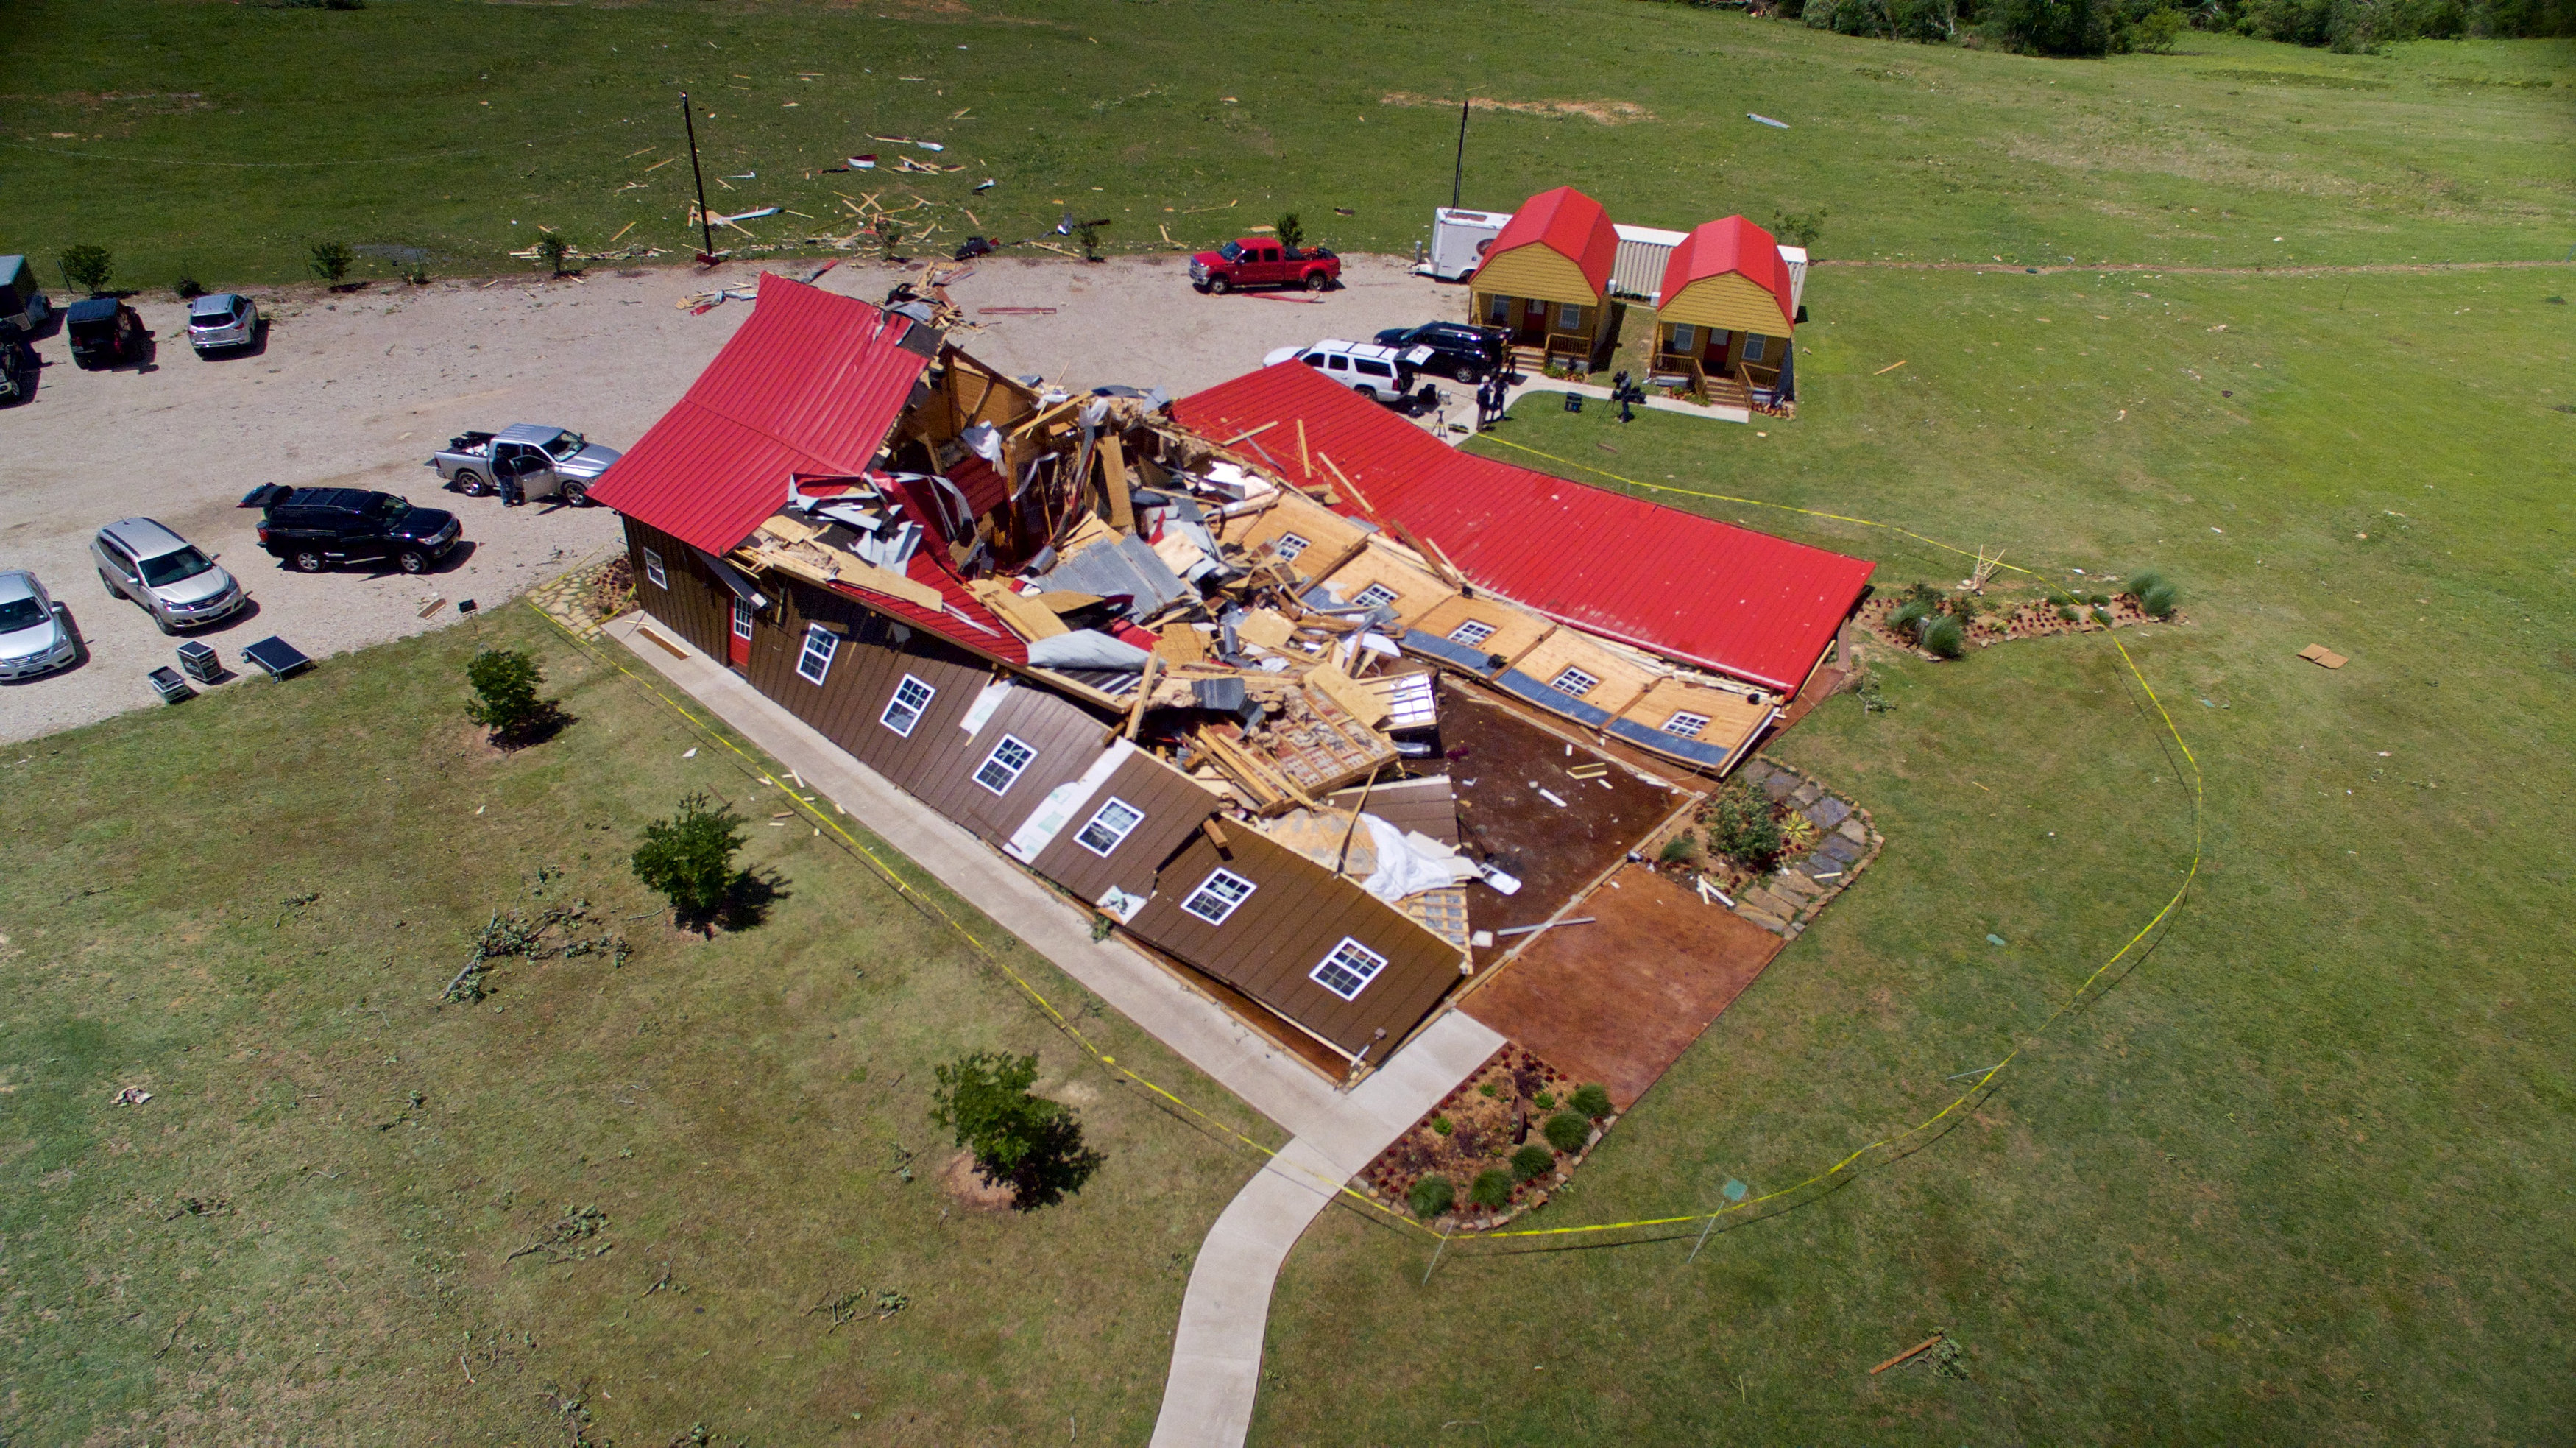 The Rustic Barn, an event hall, which suffered major tornado damage in Texas on April 30, 2017. (REUTERS/Brandon Wade)